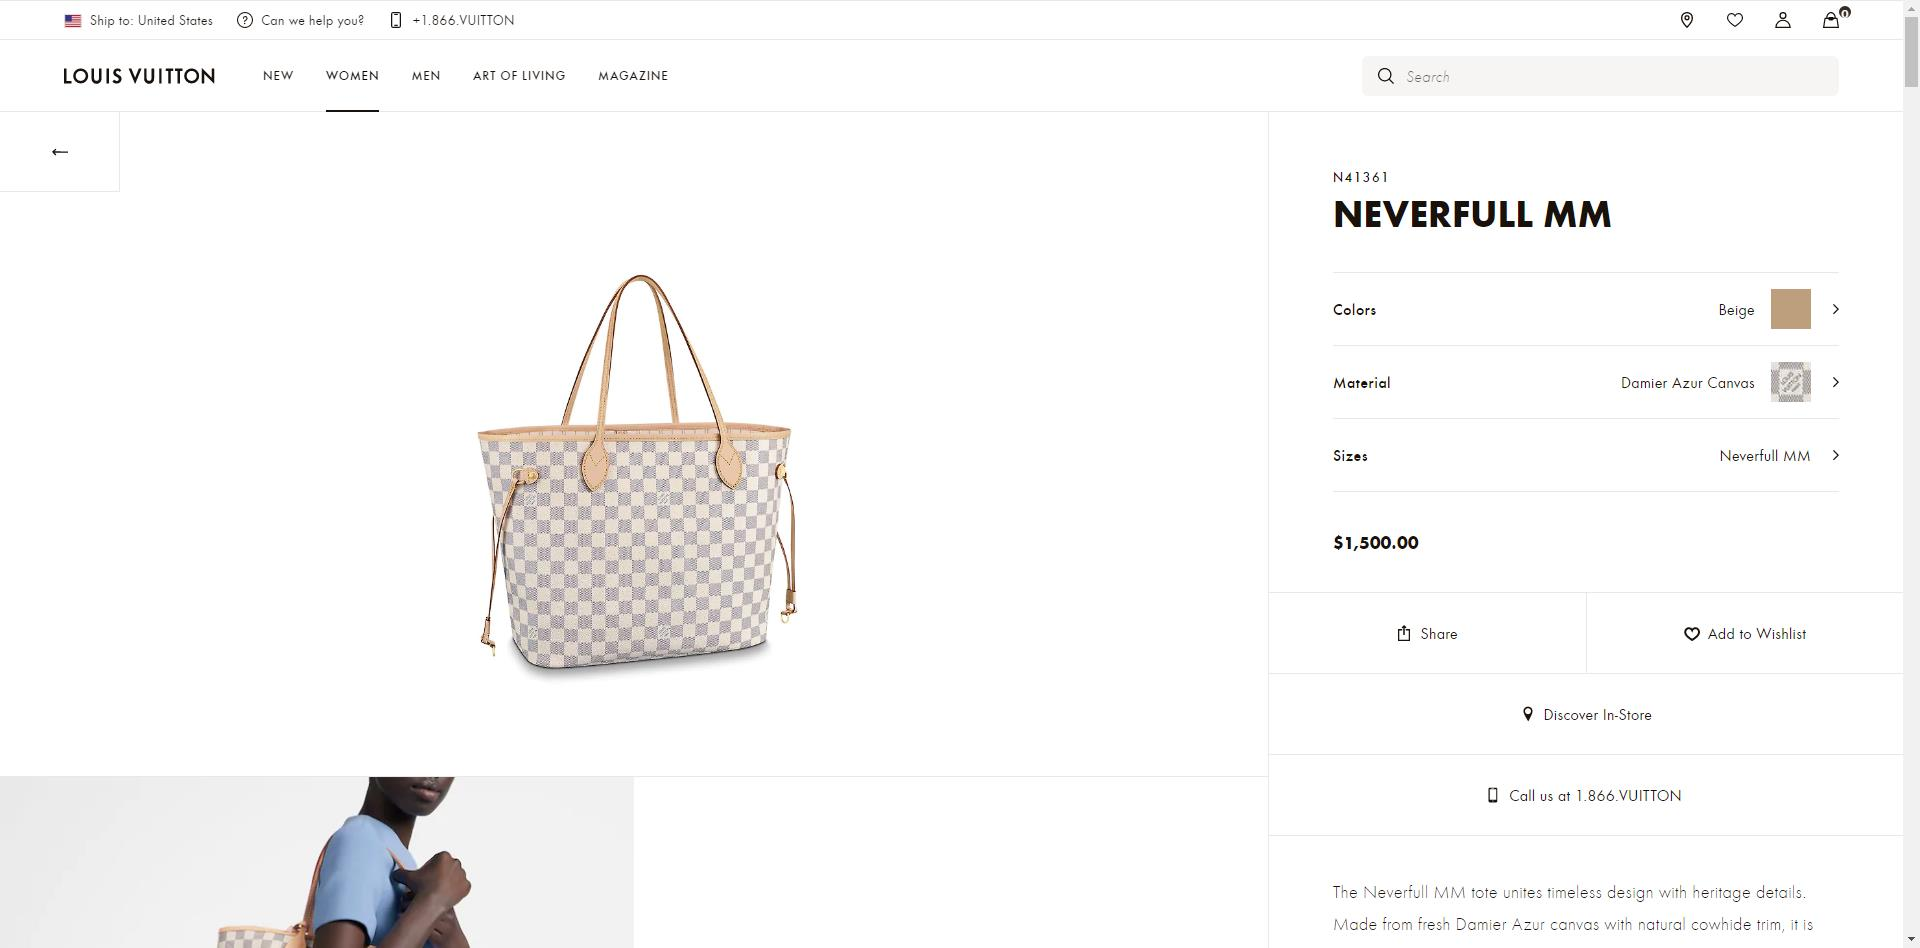 Neverfull MM Damier Azur Canvas in Beige - Handbags N41605